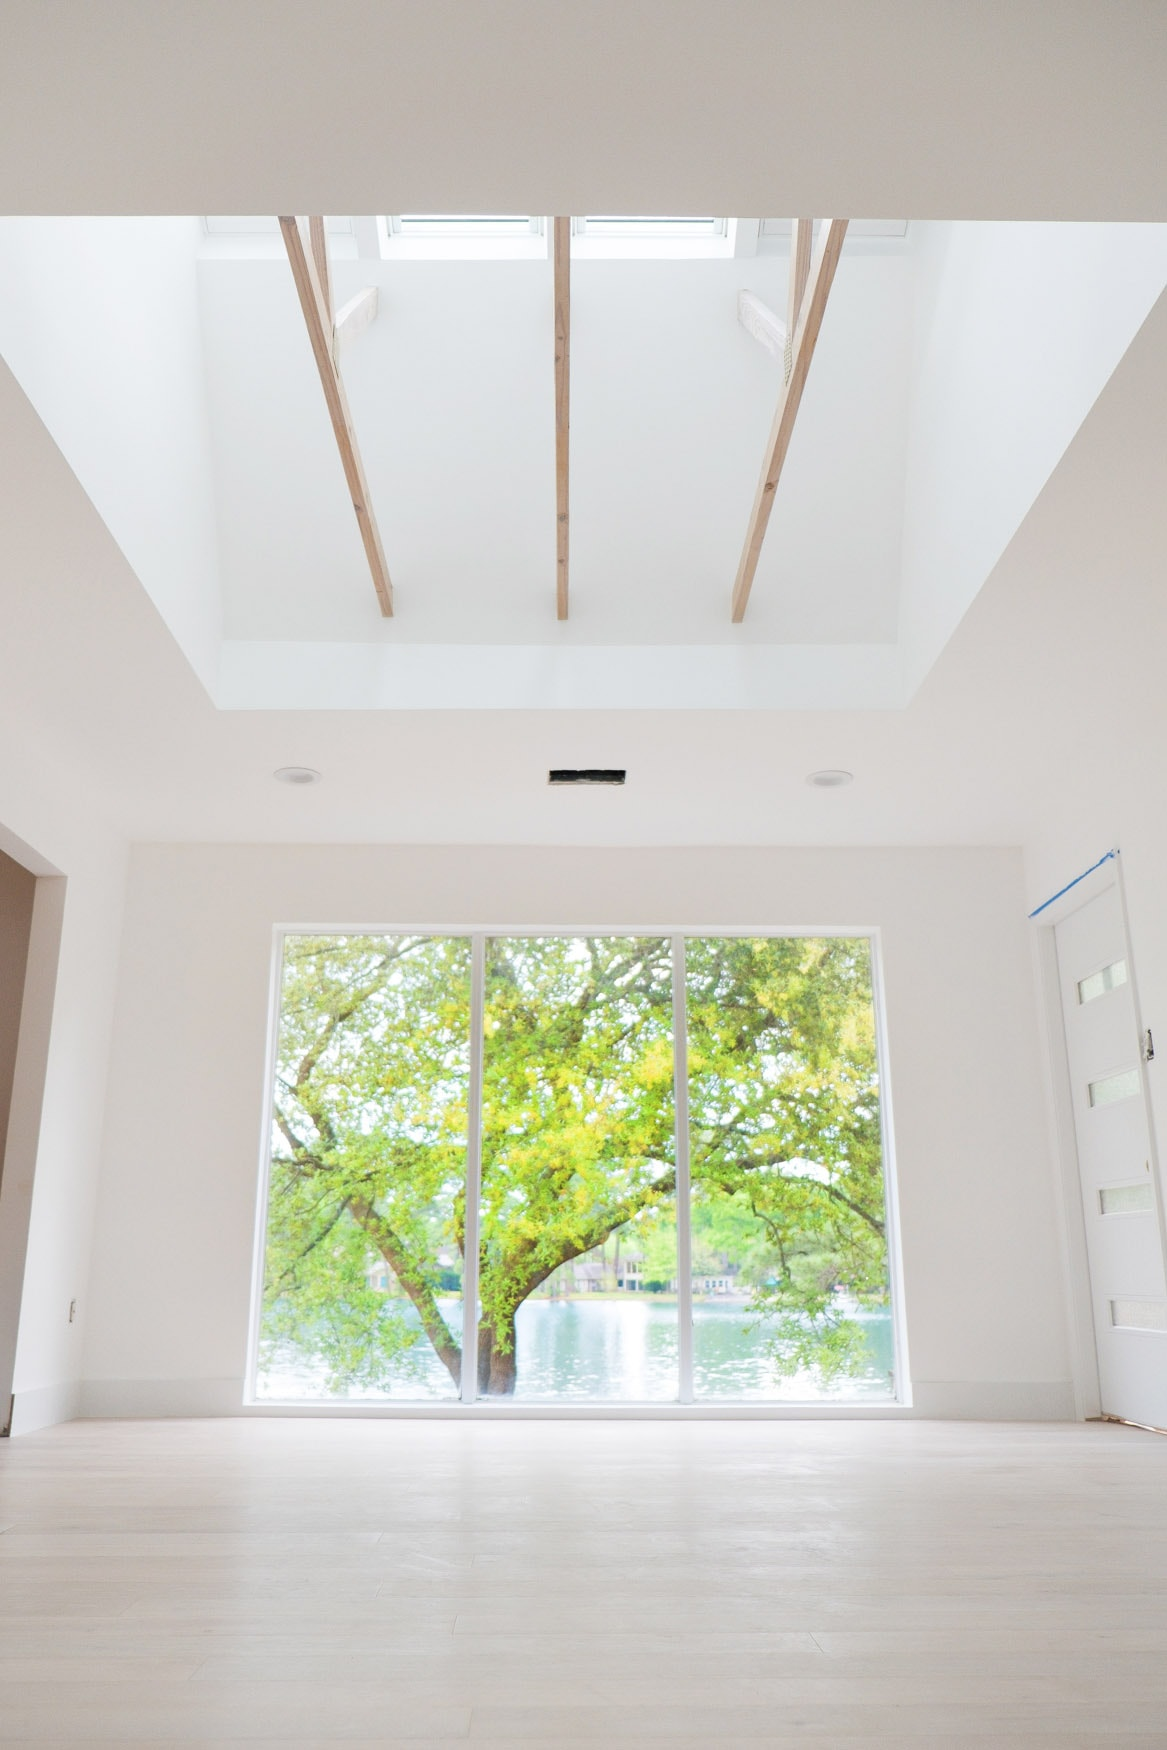 An upward angle on our new master bedroom with Velux skylights - Sugar & Cloth Casa: Before & After of Installing Skylights in The New House